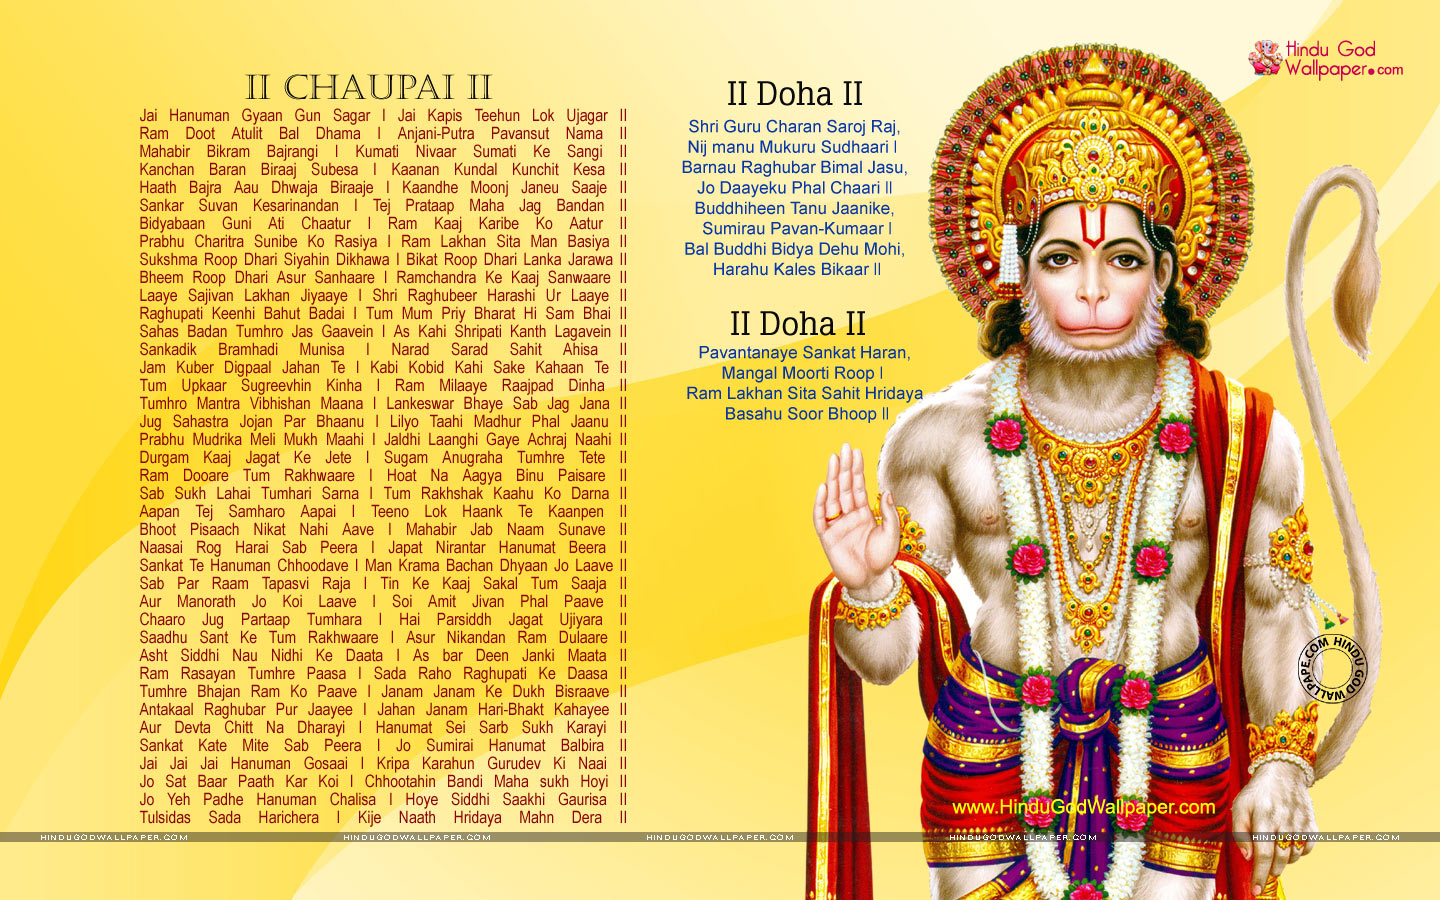 Hanuman Chalisa Live Wallpaper Free Download